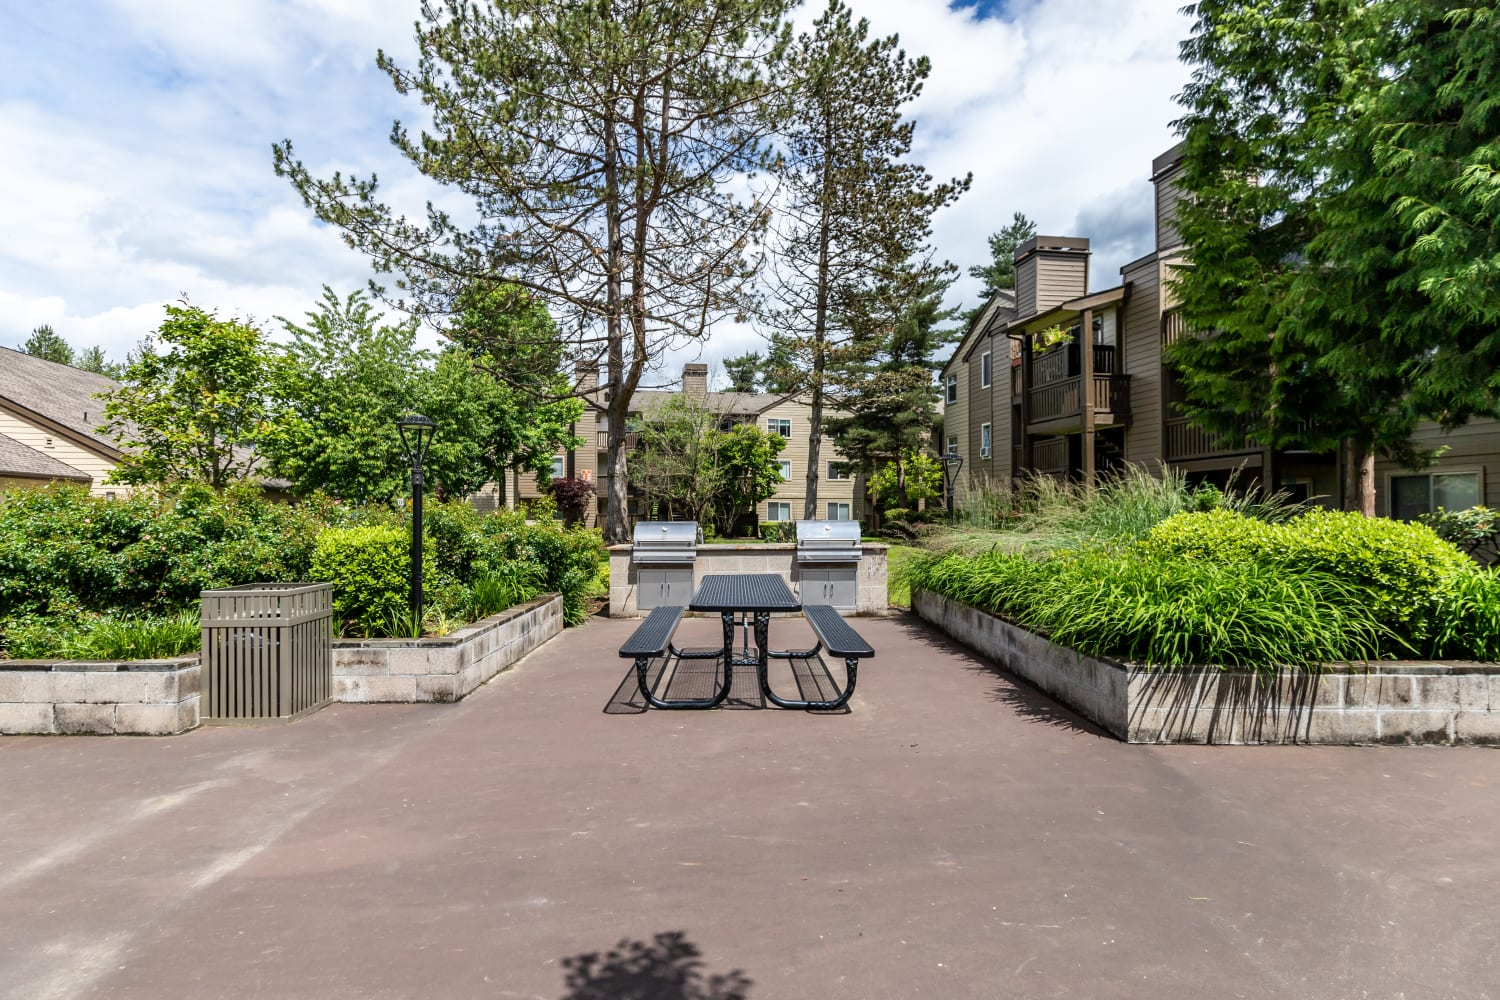 Outdoor community picnic and BBQ space at Campbell Run Apartments in Woodinville, Washington